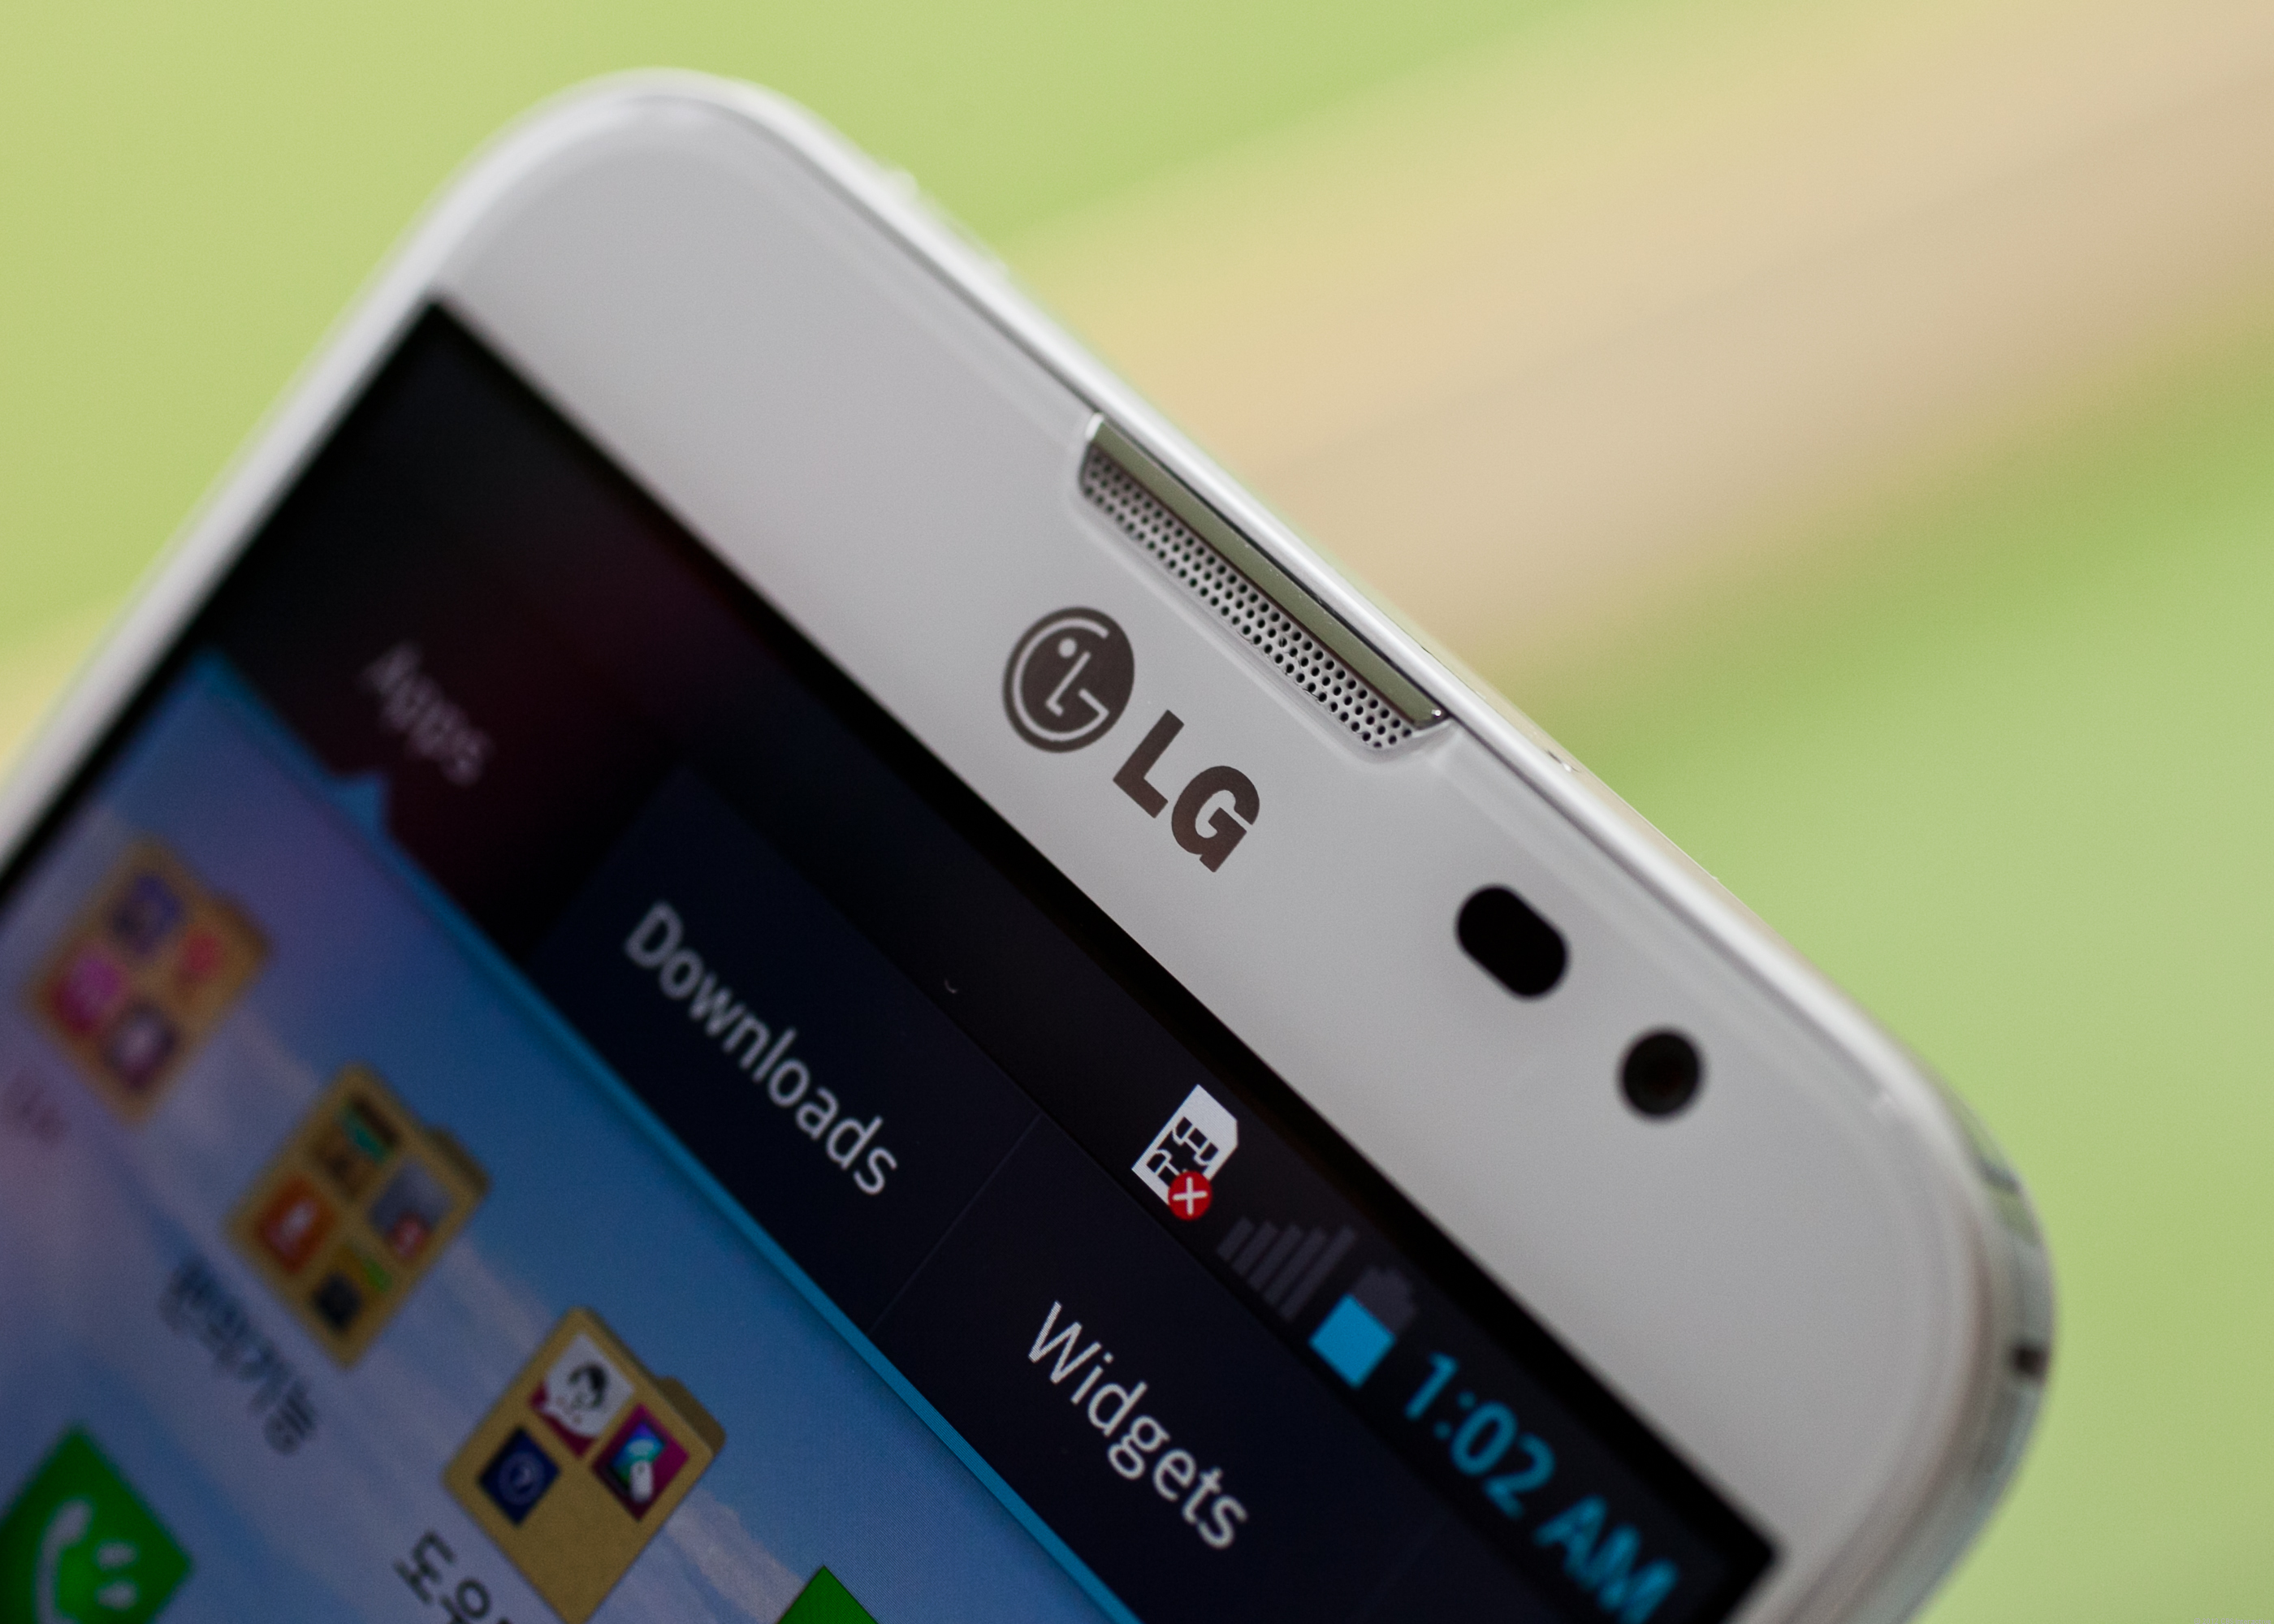 2.1-megapixel shooter in the front